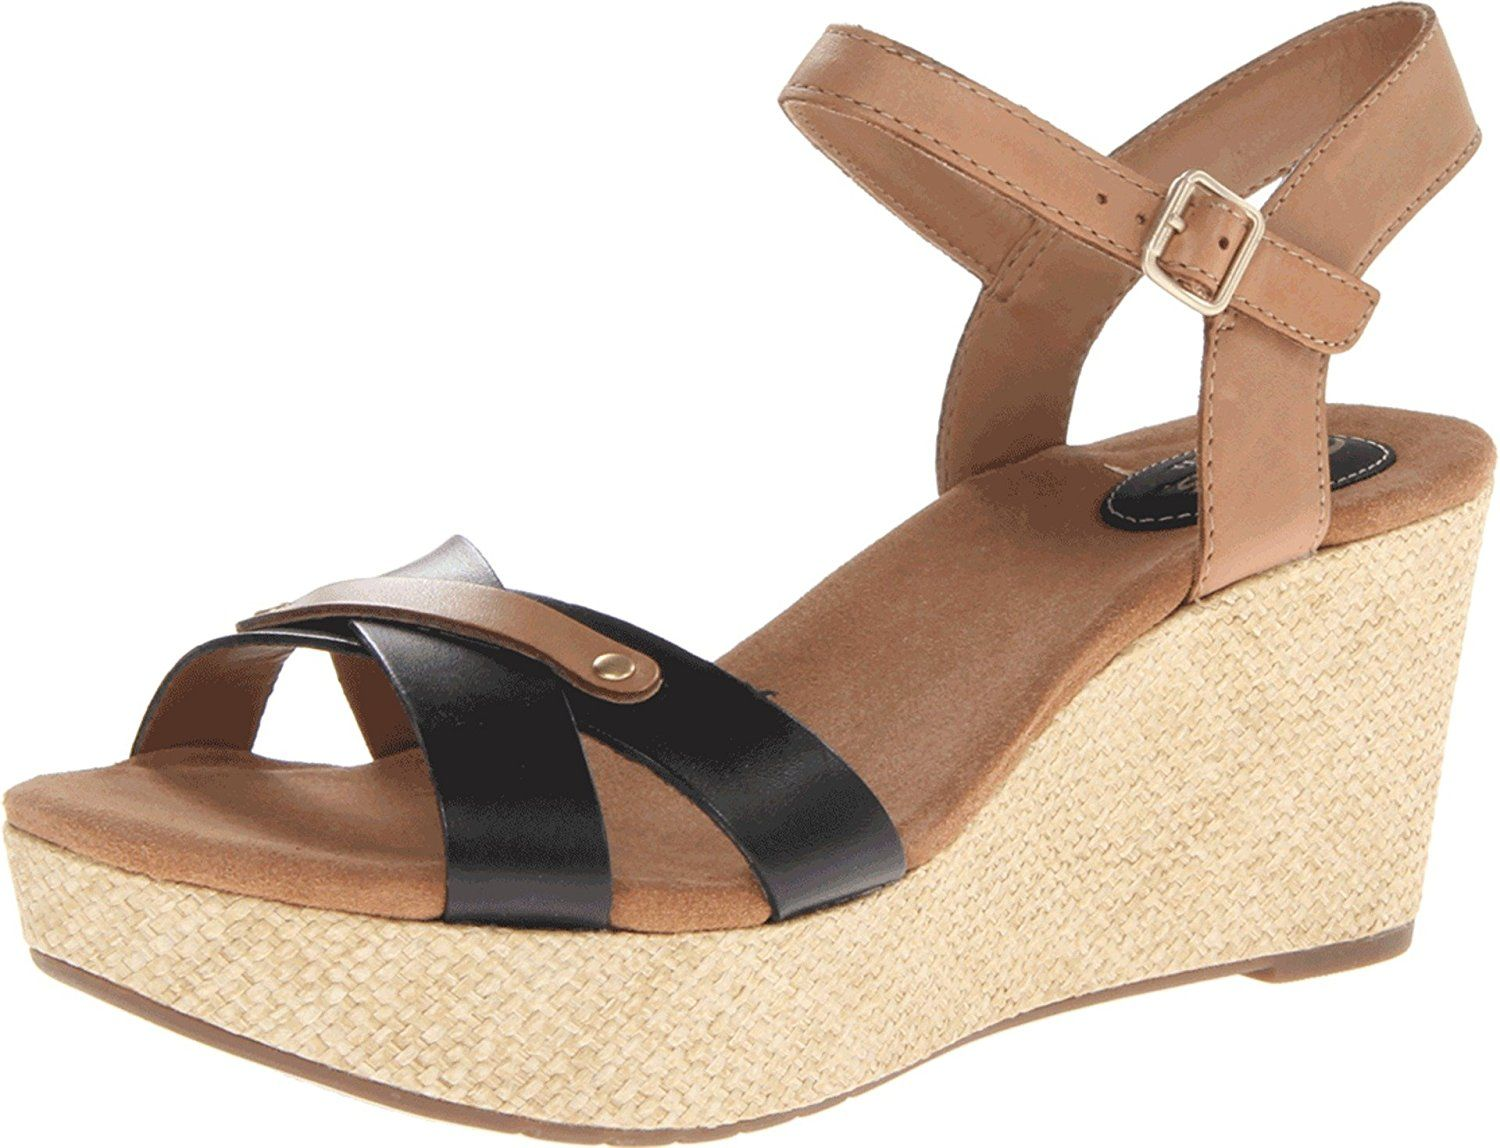 clarks womens wedges reviews